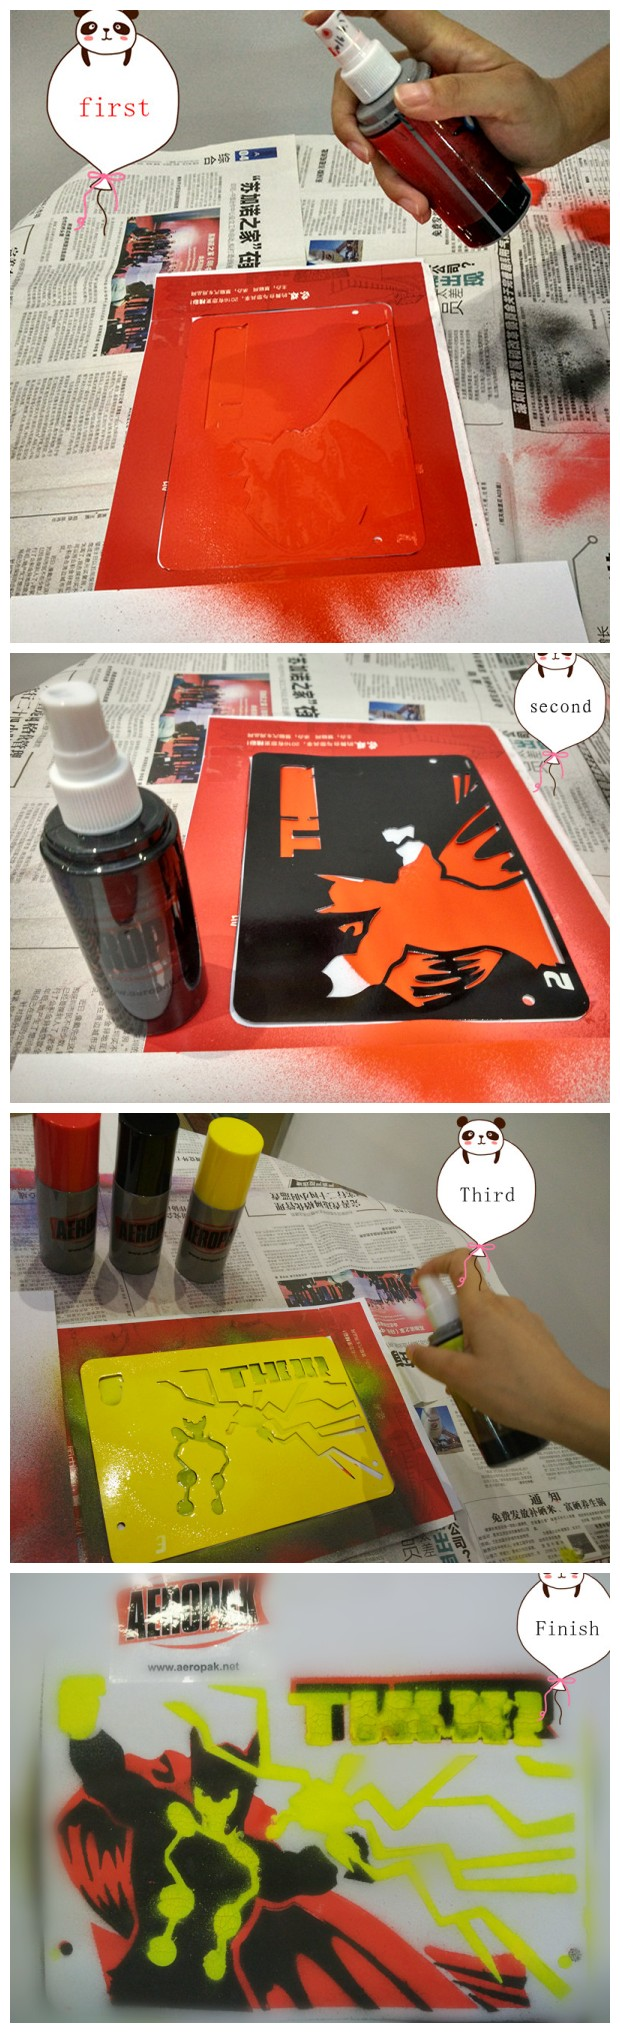 Washable Chalkboard Fluorescent Spray Paint For School / Industry 200ml